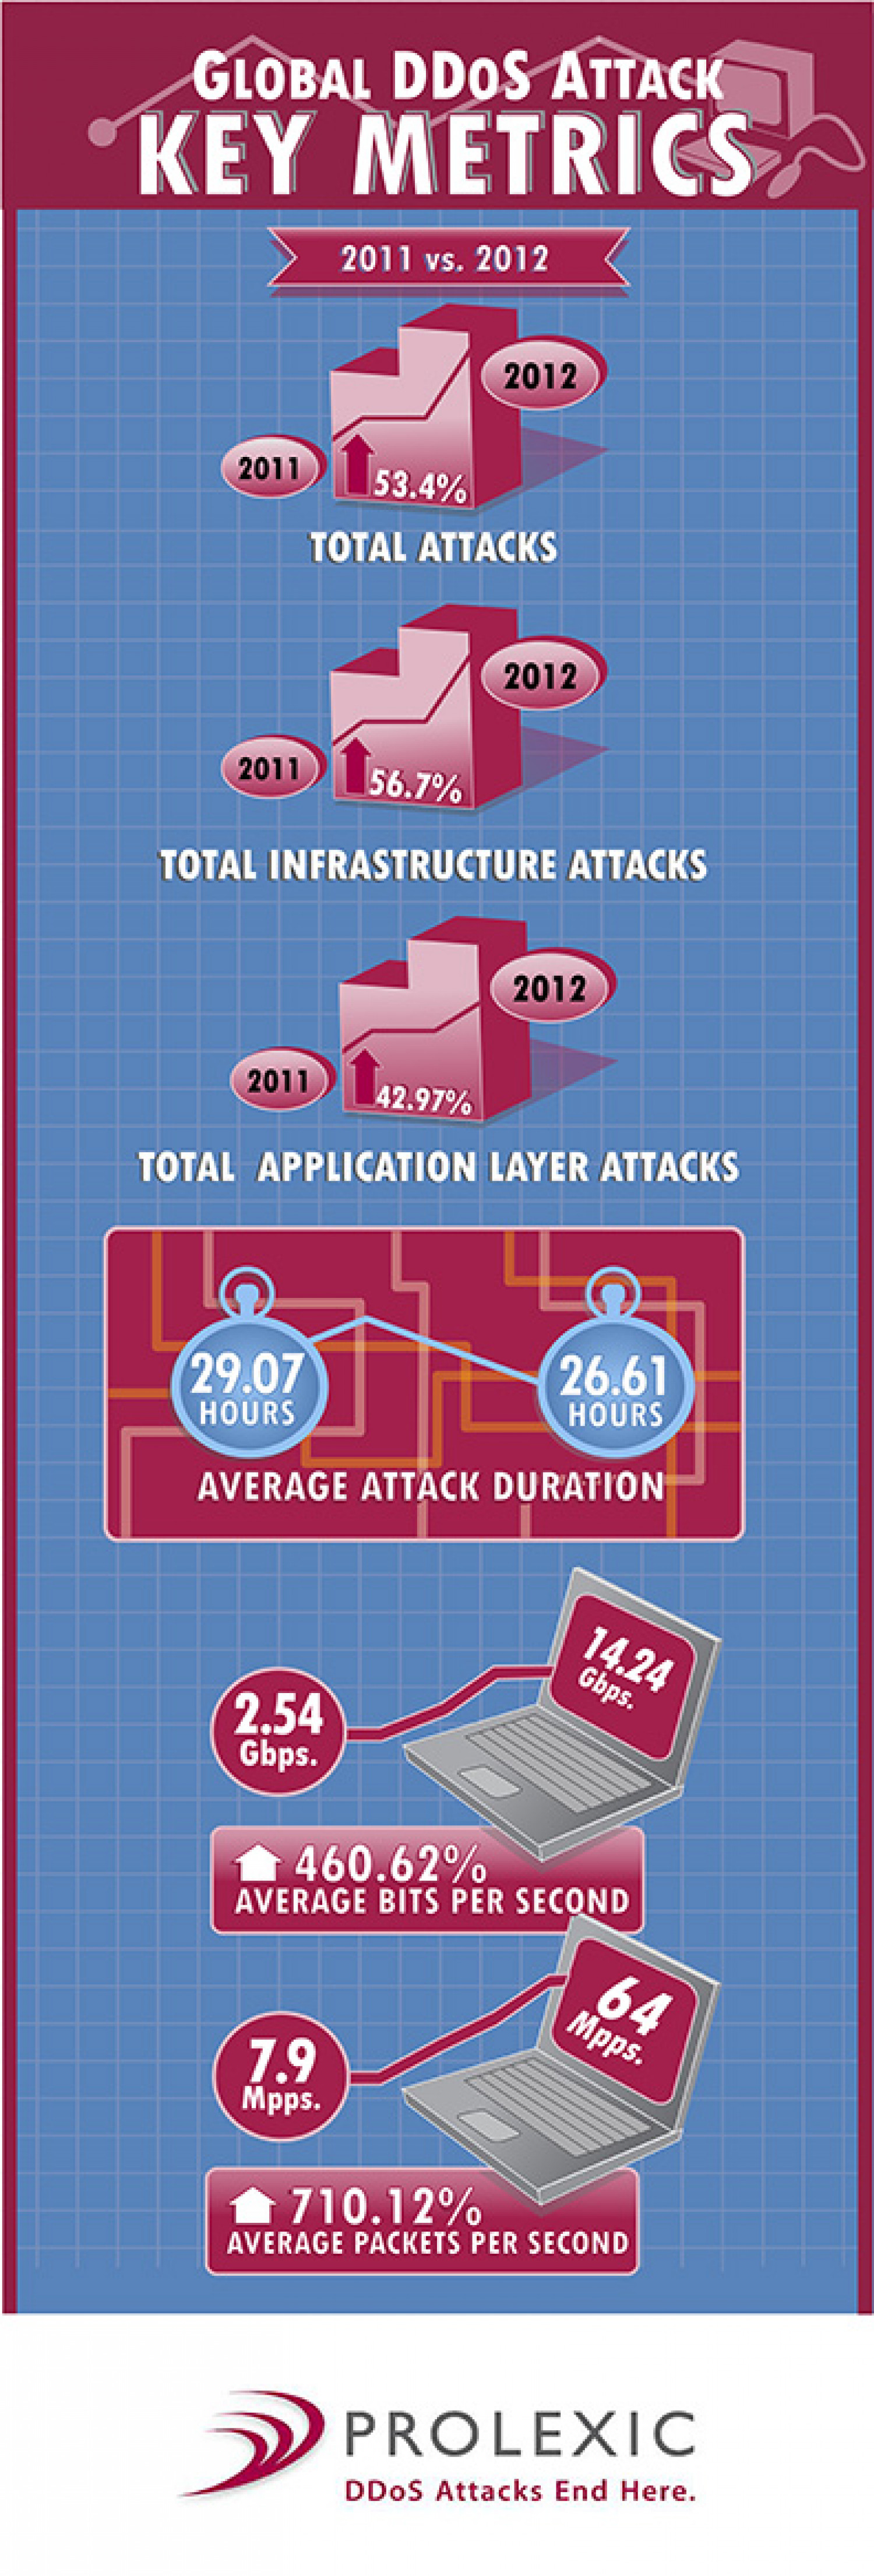 Global DDoS Attacks Key Metrics Infographic